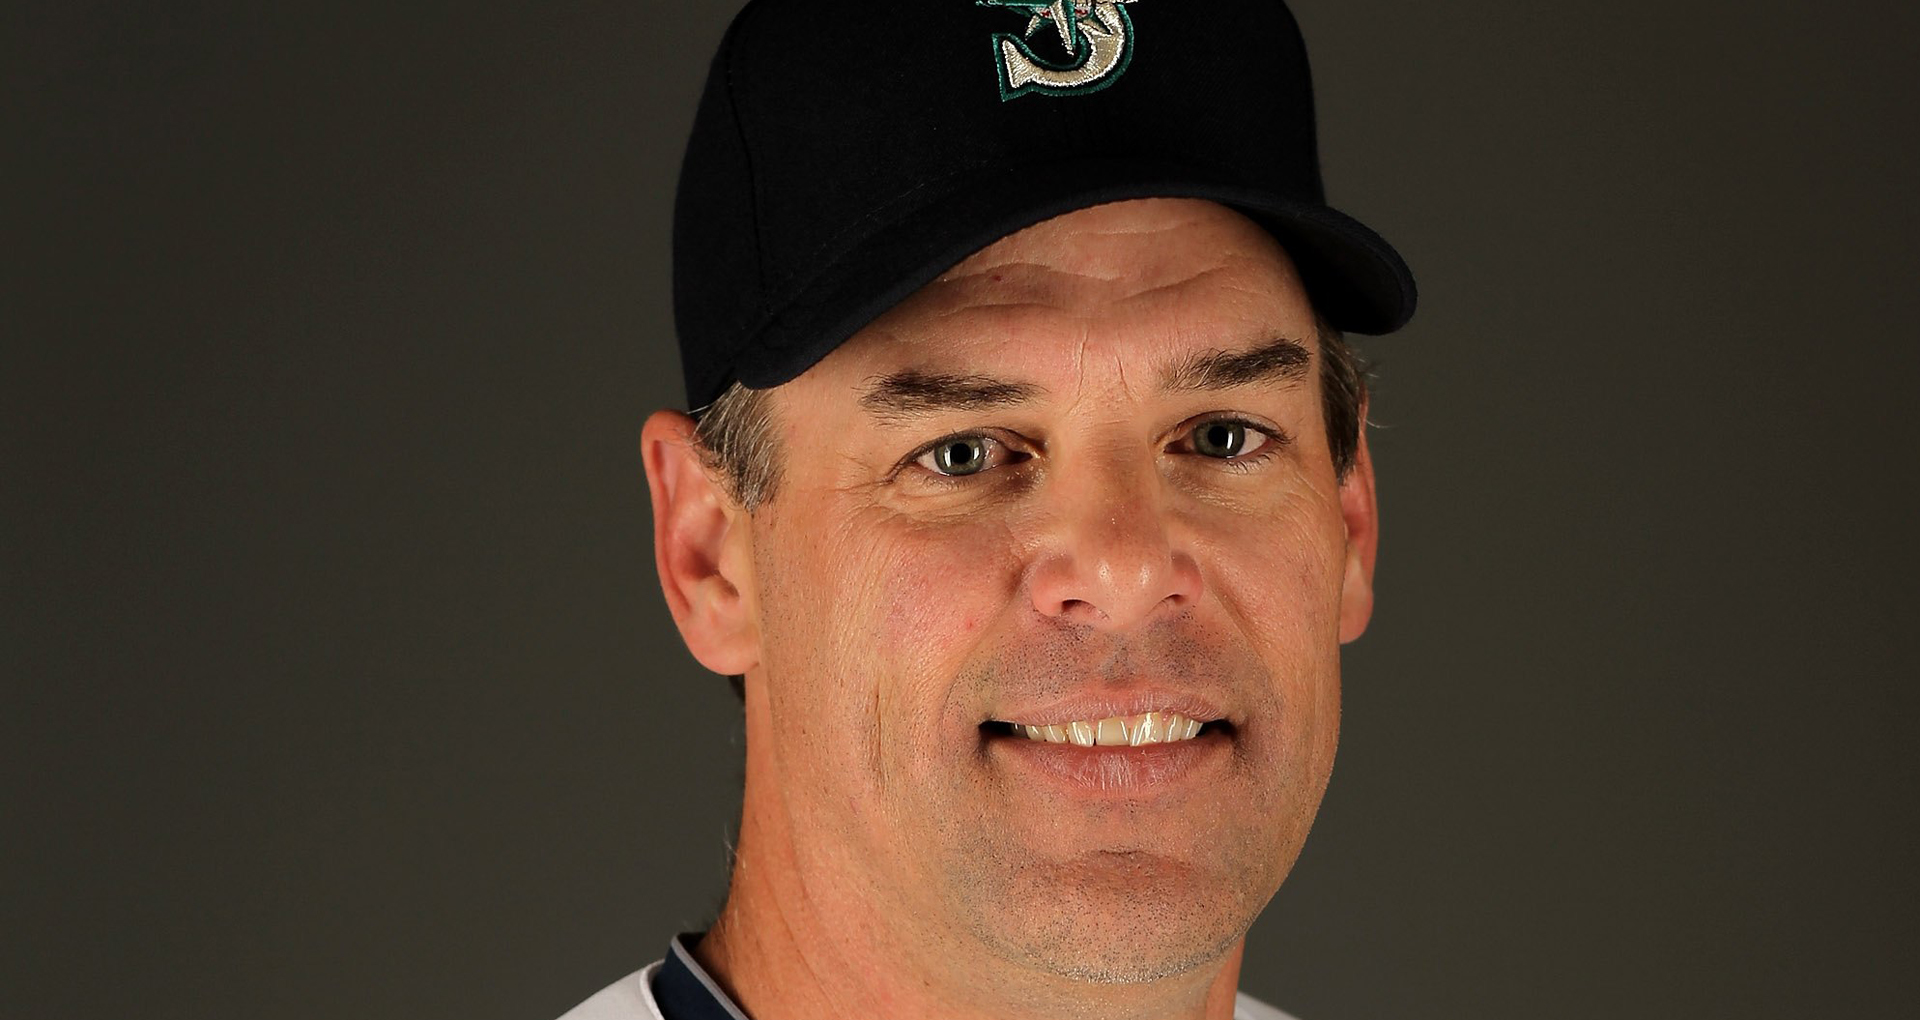 John Wetteland poses for a photo at the Mariners spring training complex on Feb. 25, 2010 in Peoria, Arizona. (Credit: Ezra Shaw/Getty Images)